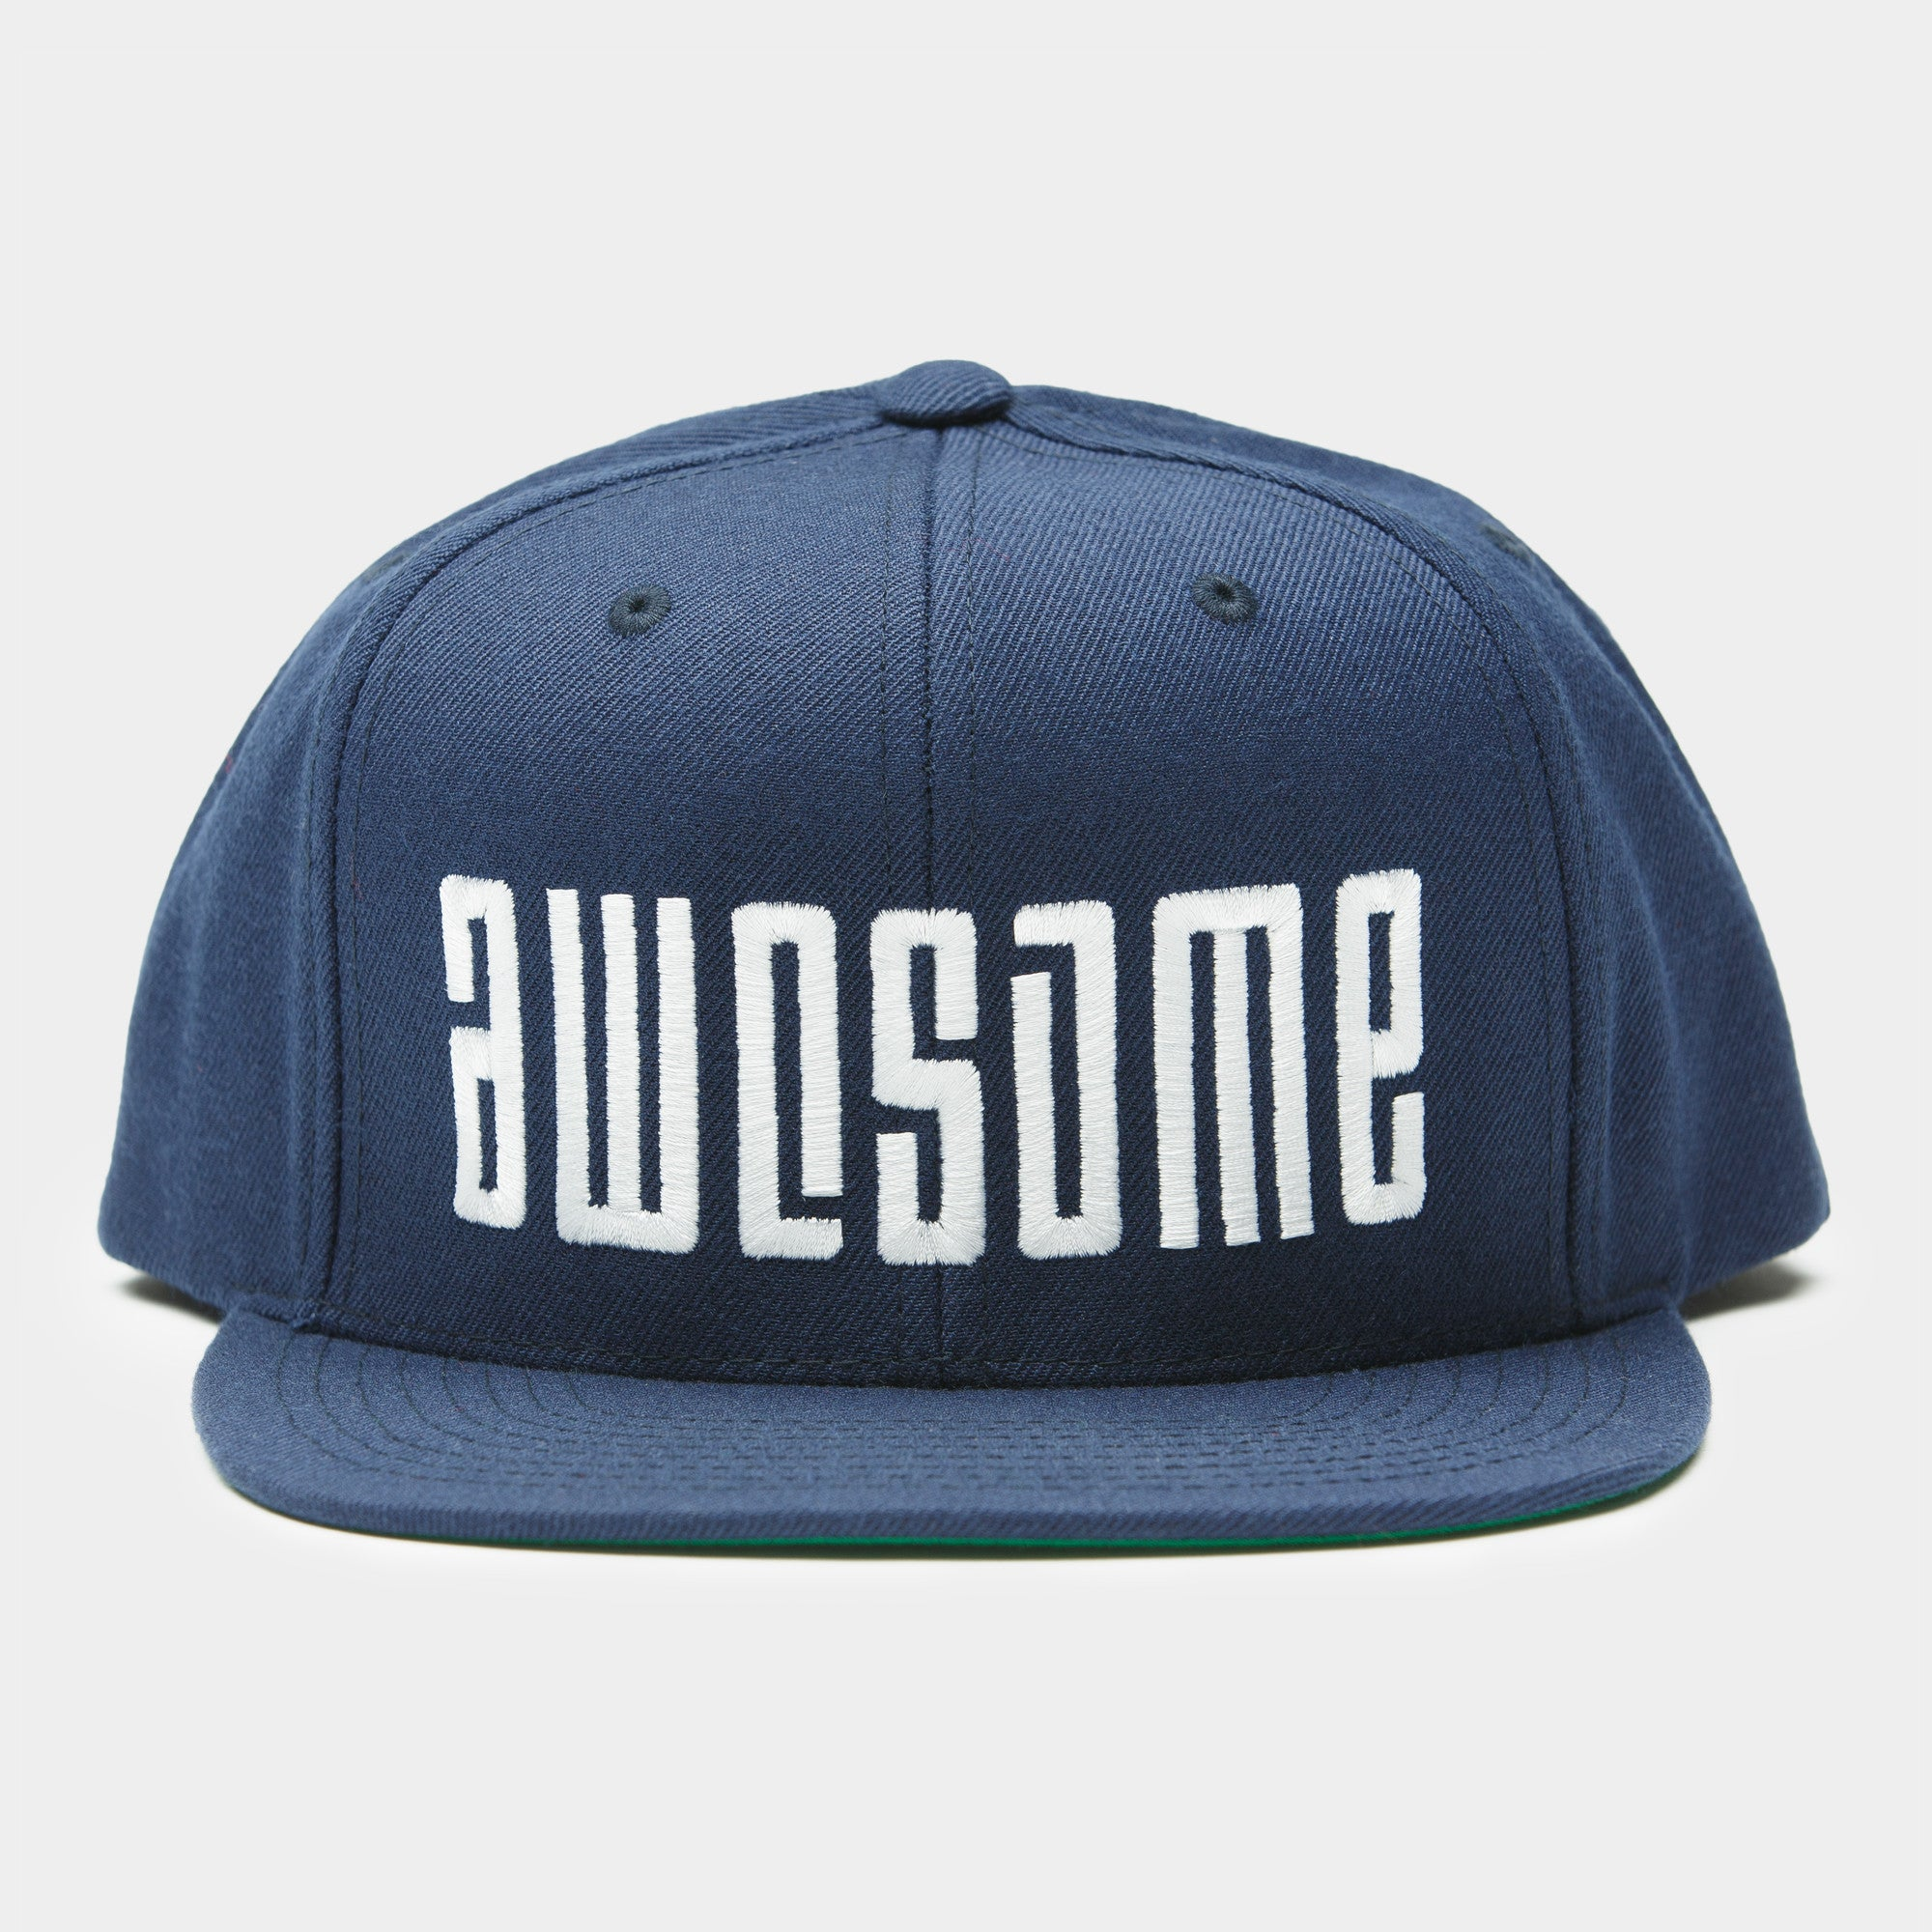 Logo Embroidery Snapback Cap White Blue Awesome Surfboards